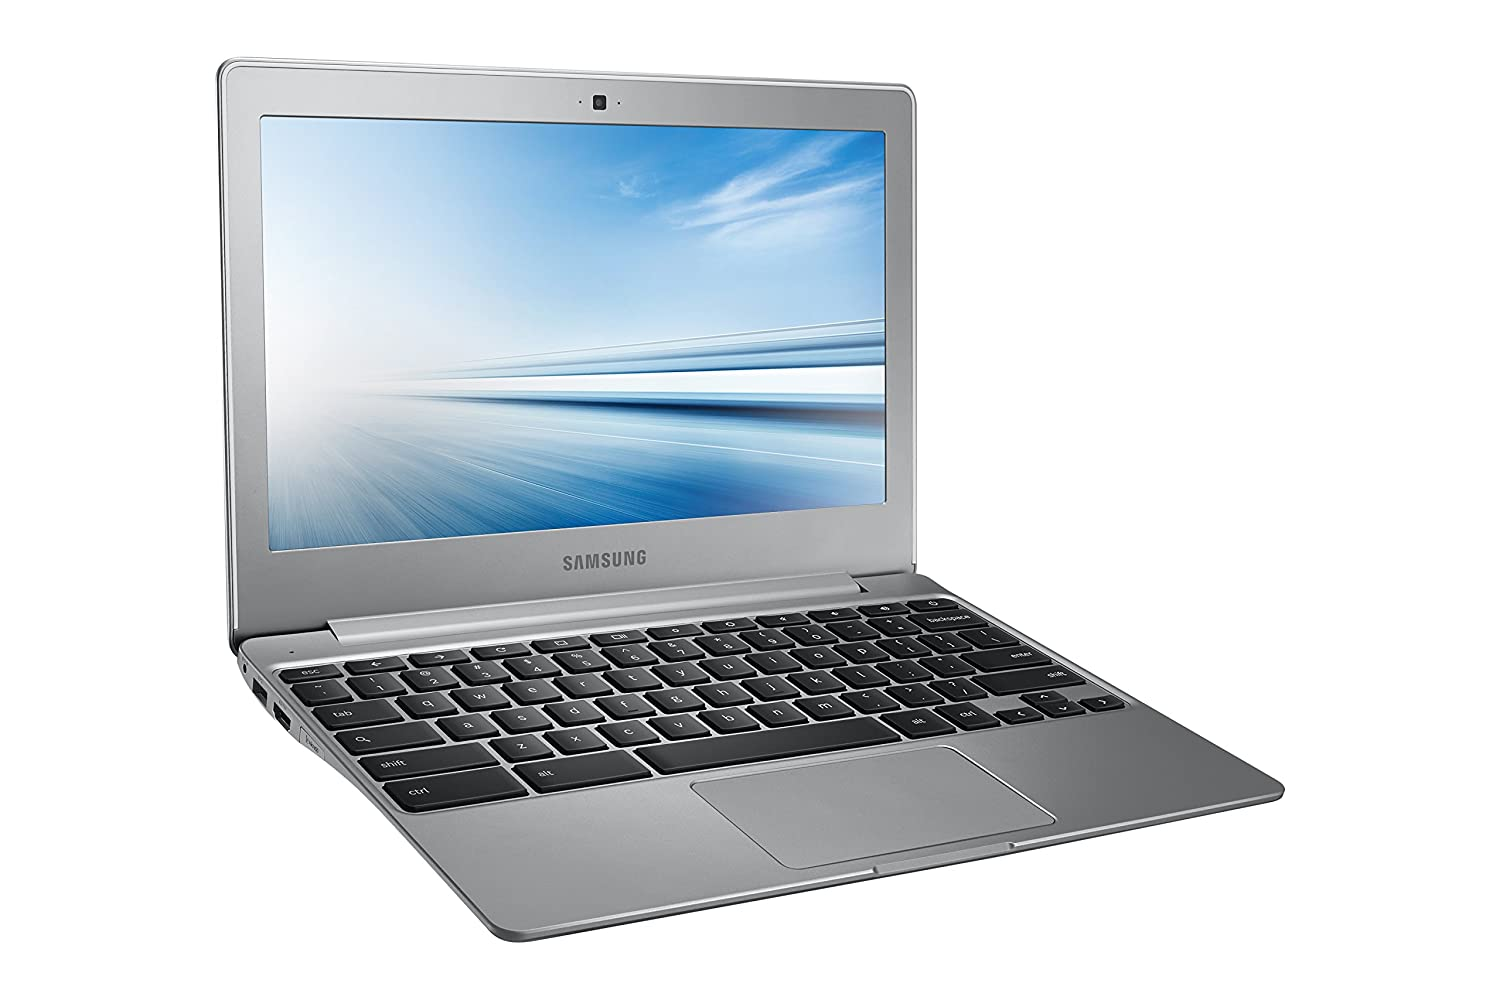 Samsung Chromebook 2 13.3in